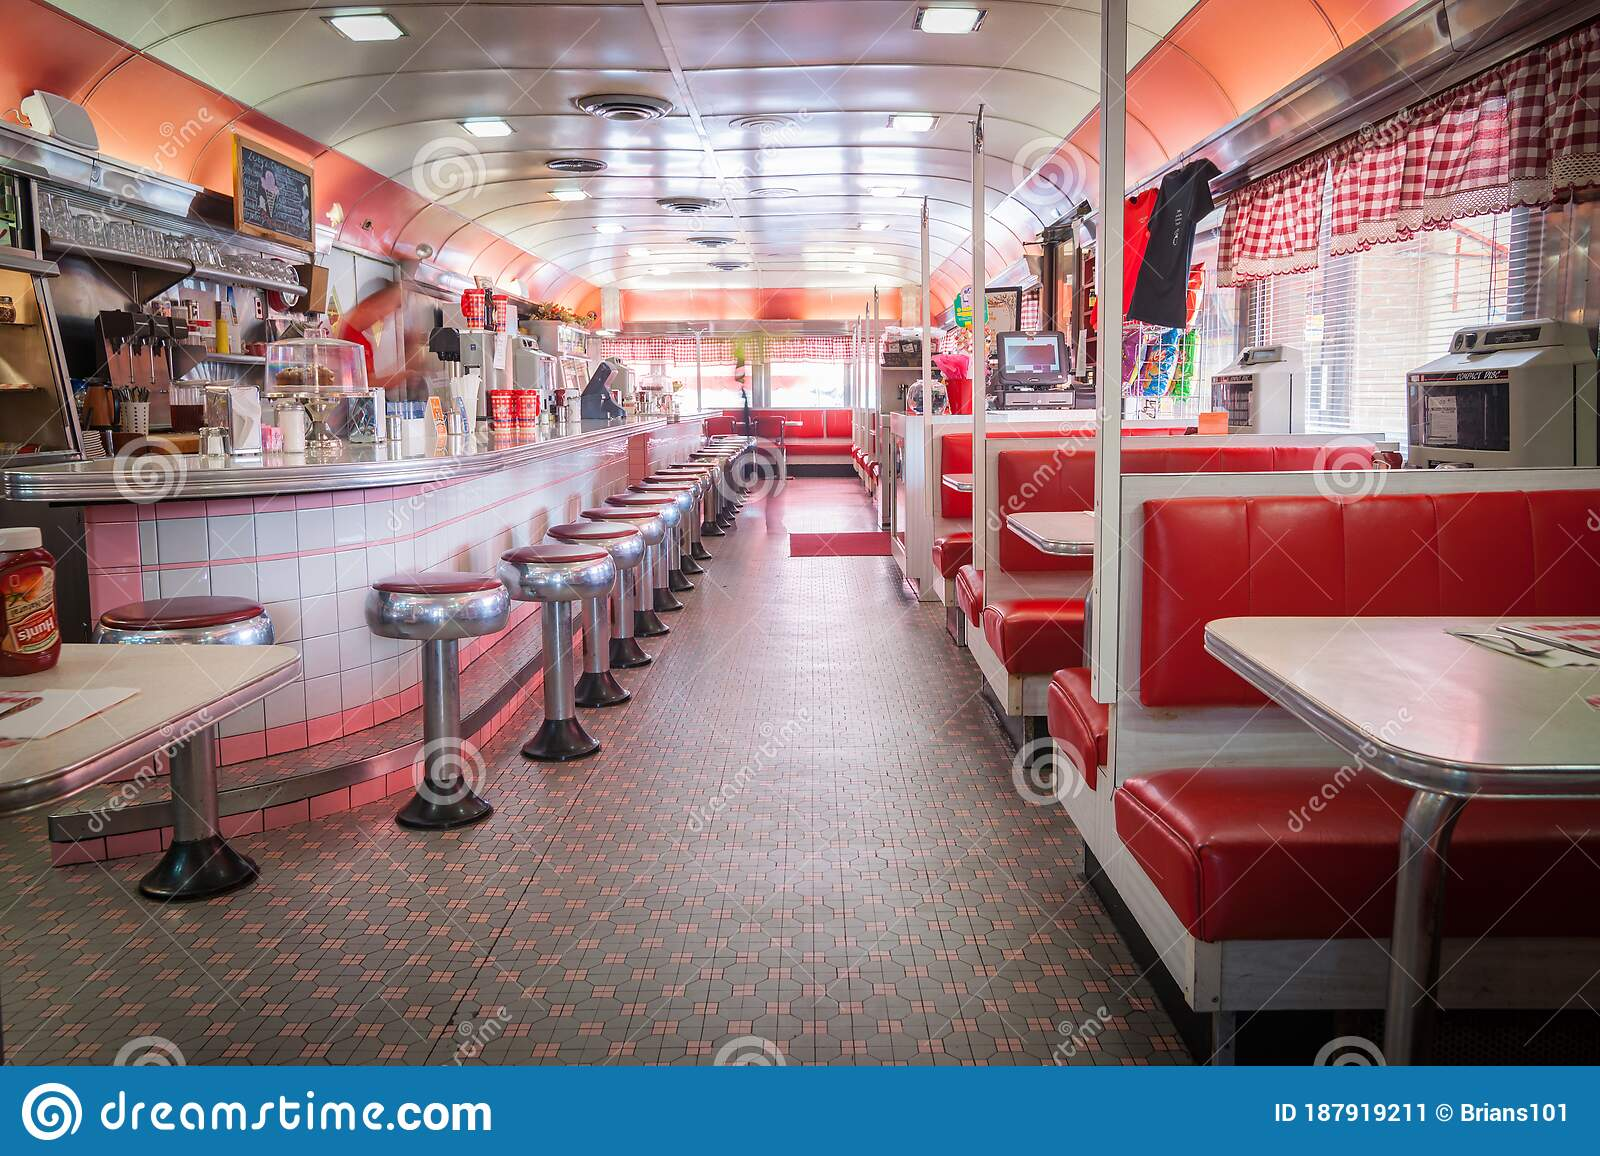 Traditional Styl E American Diner In Retro Design Fitout Editorial Photo Image Of Style Food 187919211